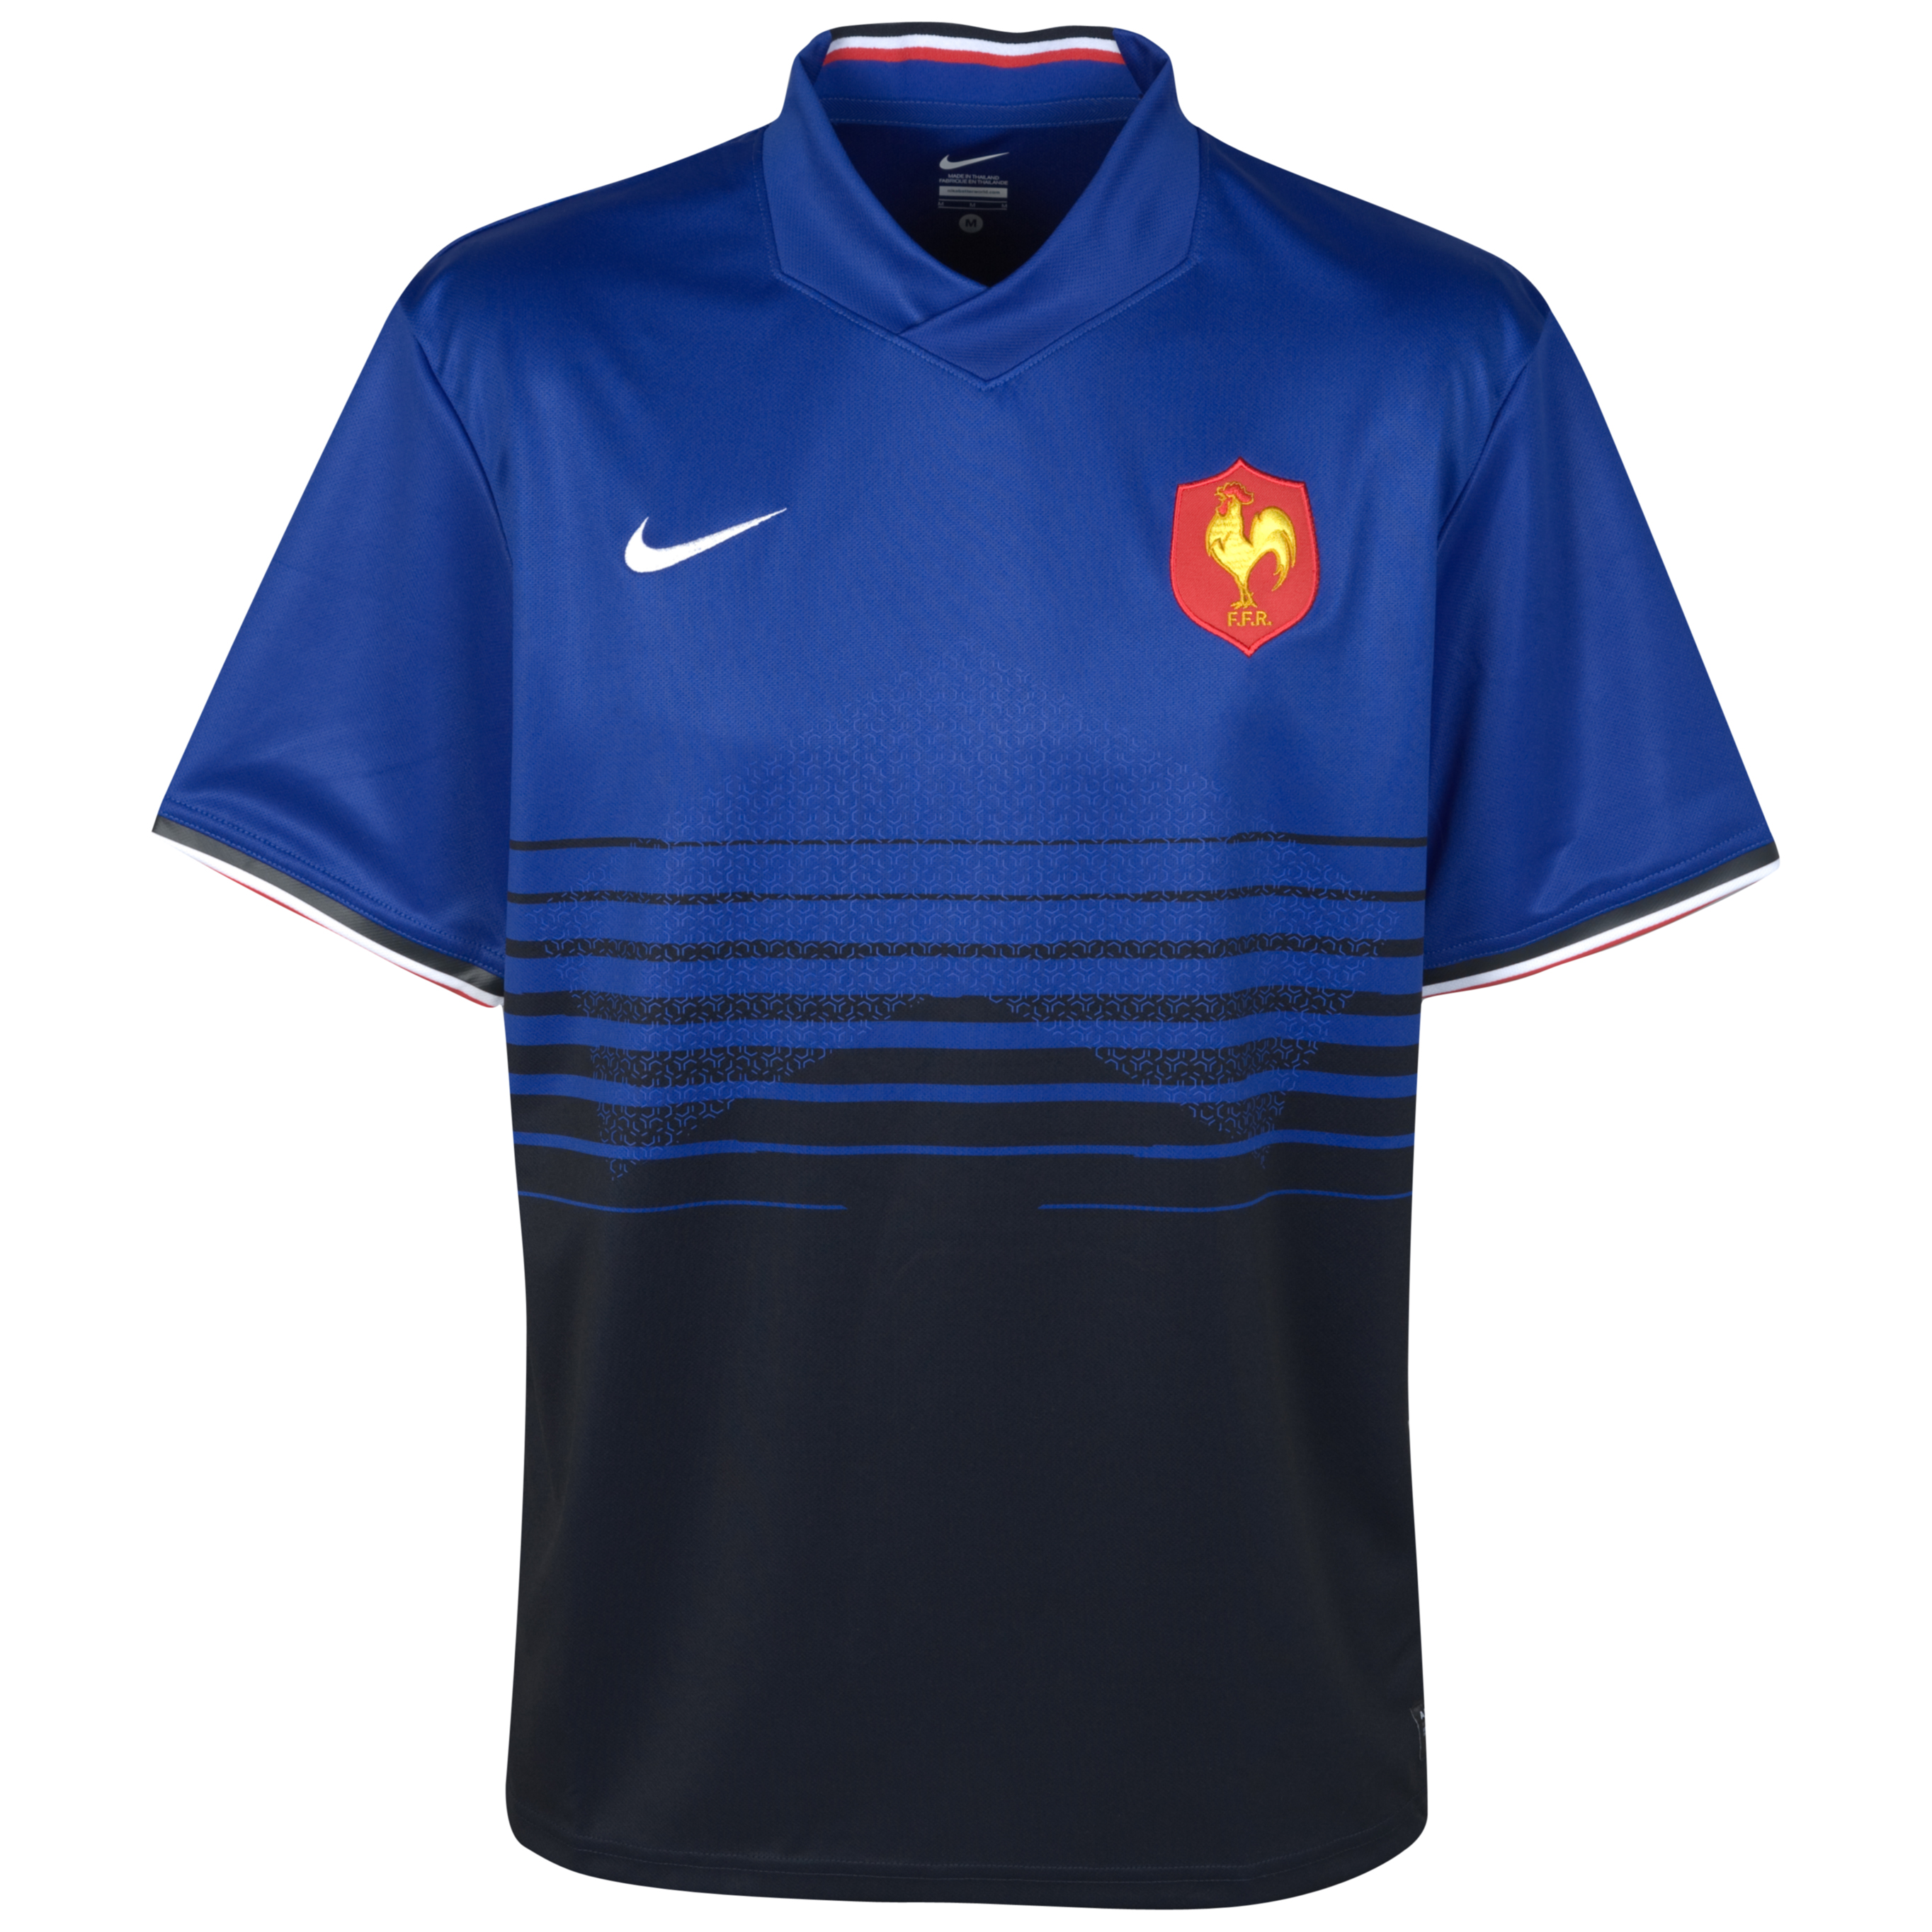 France Rugby Home Replica Jersey 2011/12. for 40€